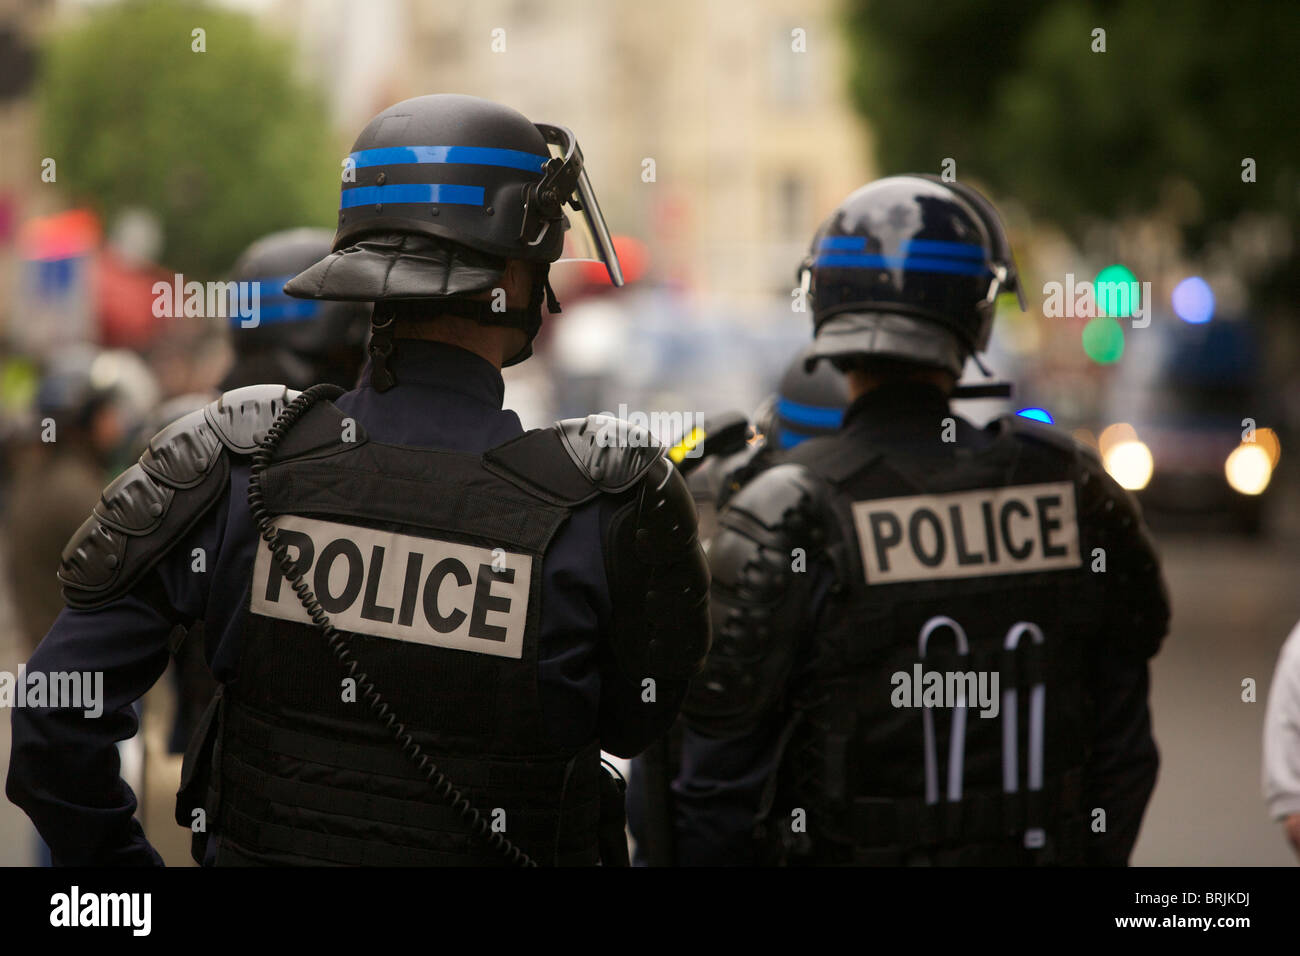 CRS riot police in Paris' Belleville after troubles with Chinese demonstrators Photograph by Owen Franken - Stock Image